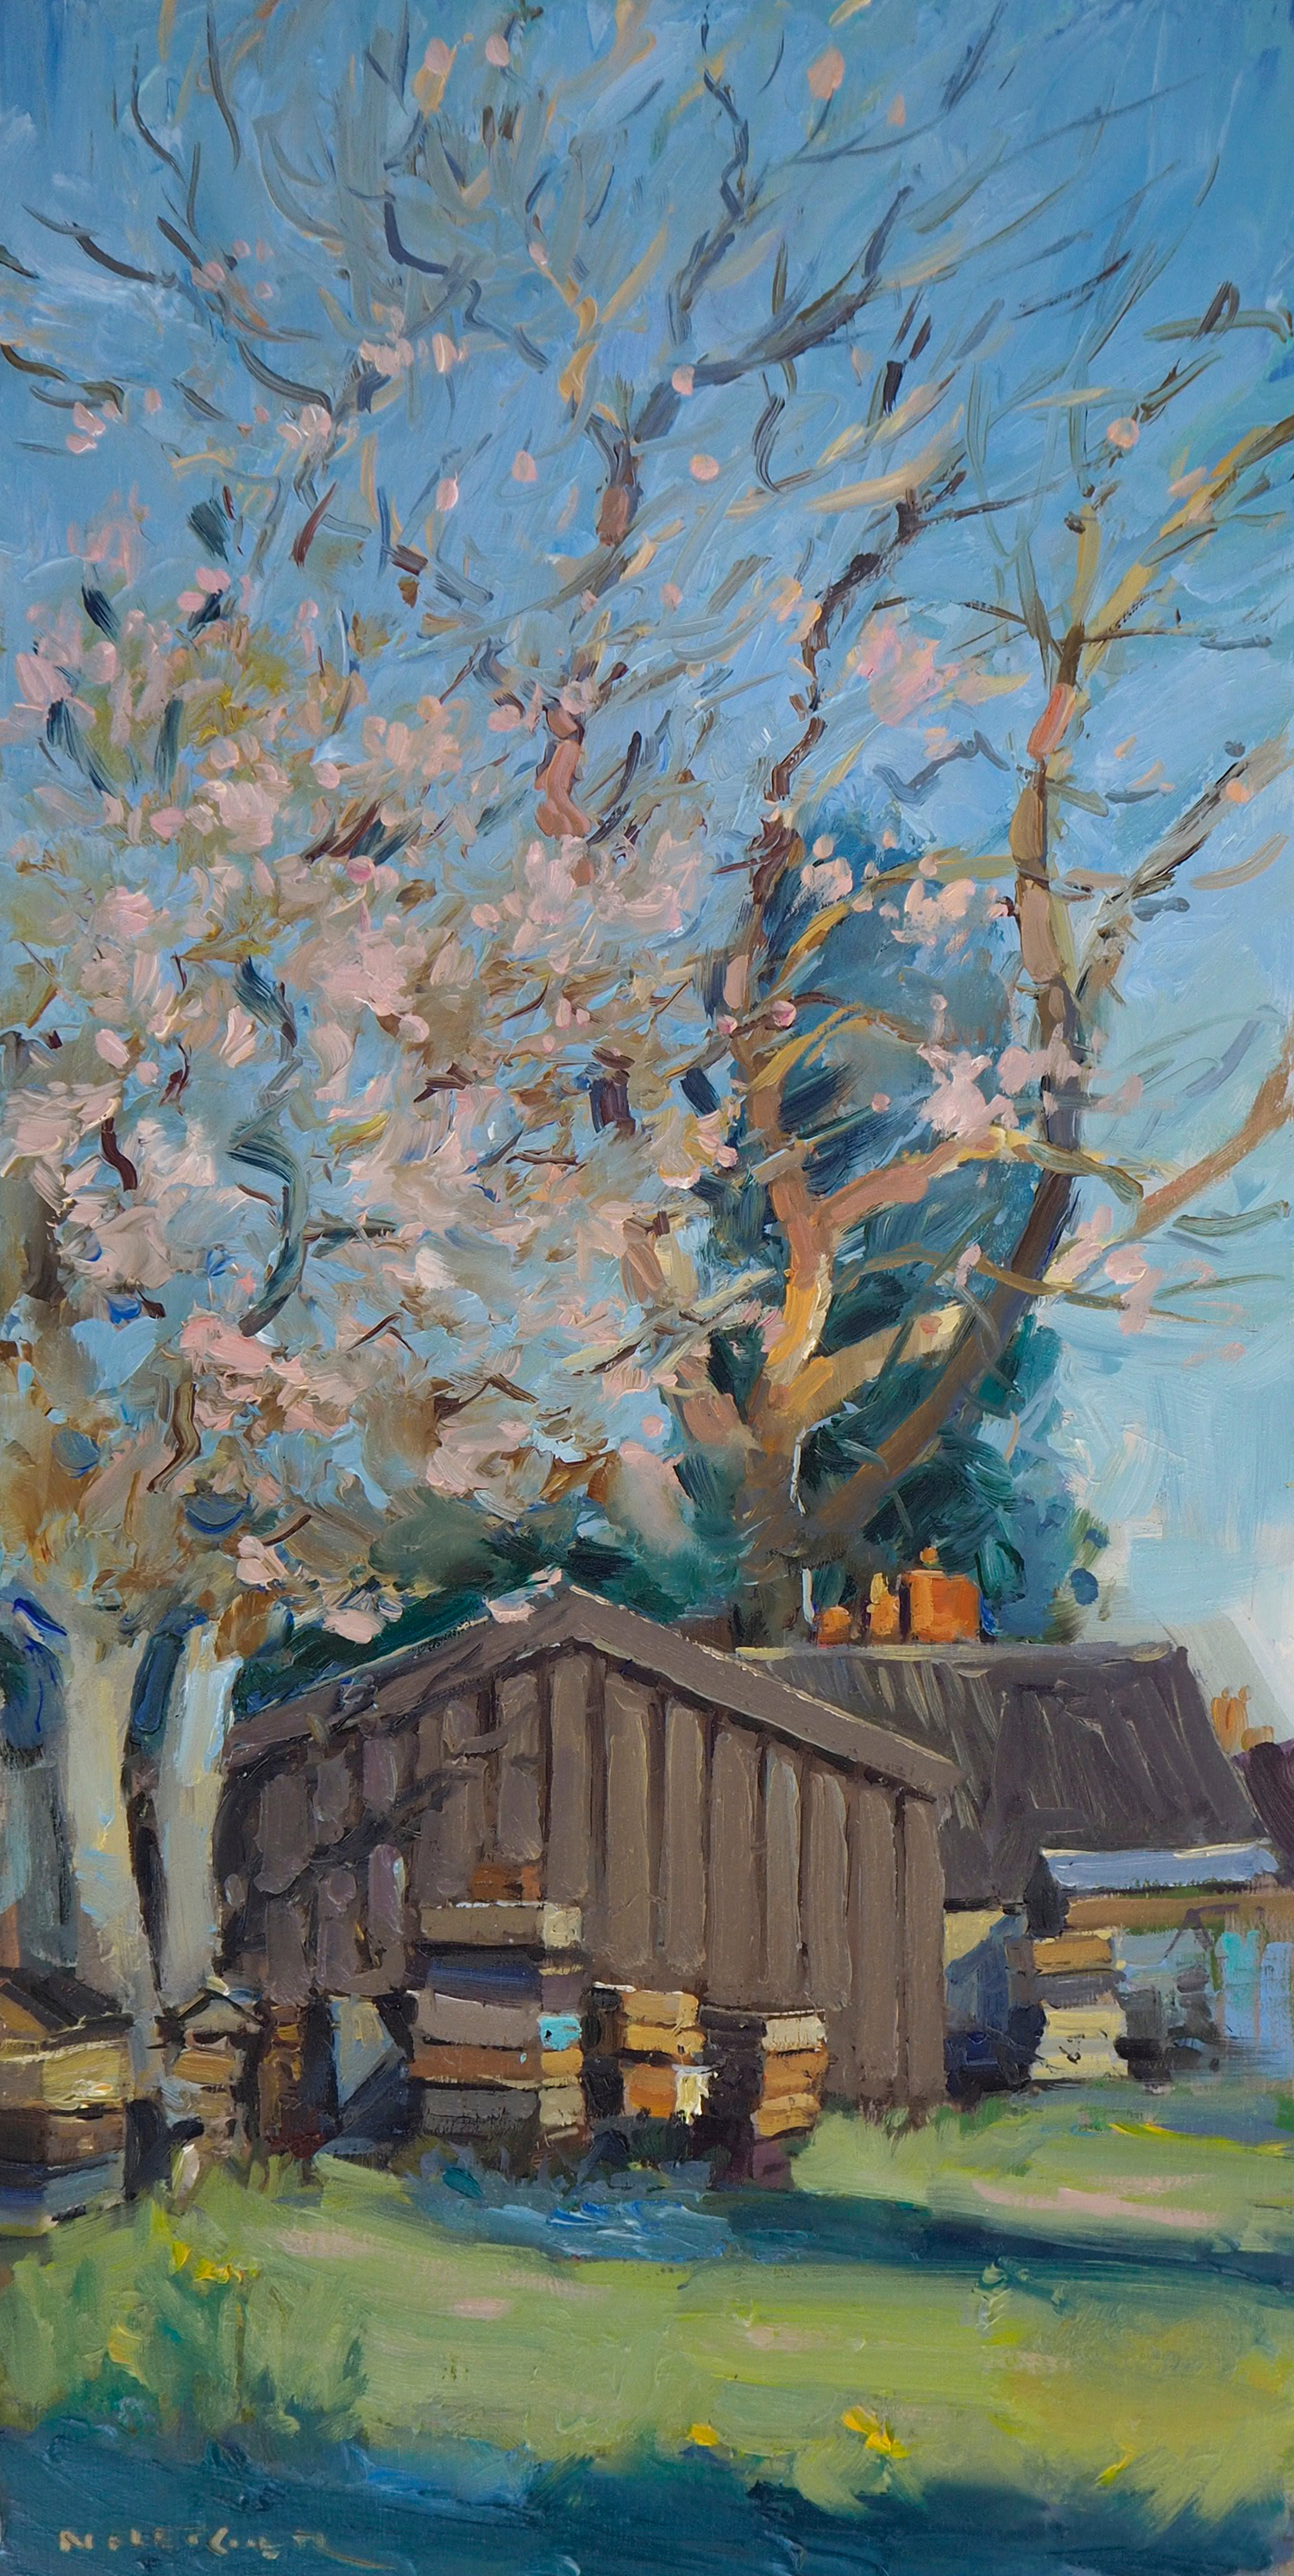 Cherry Blossom over the beehives